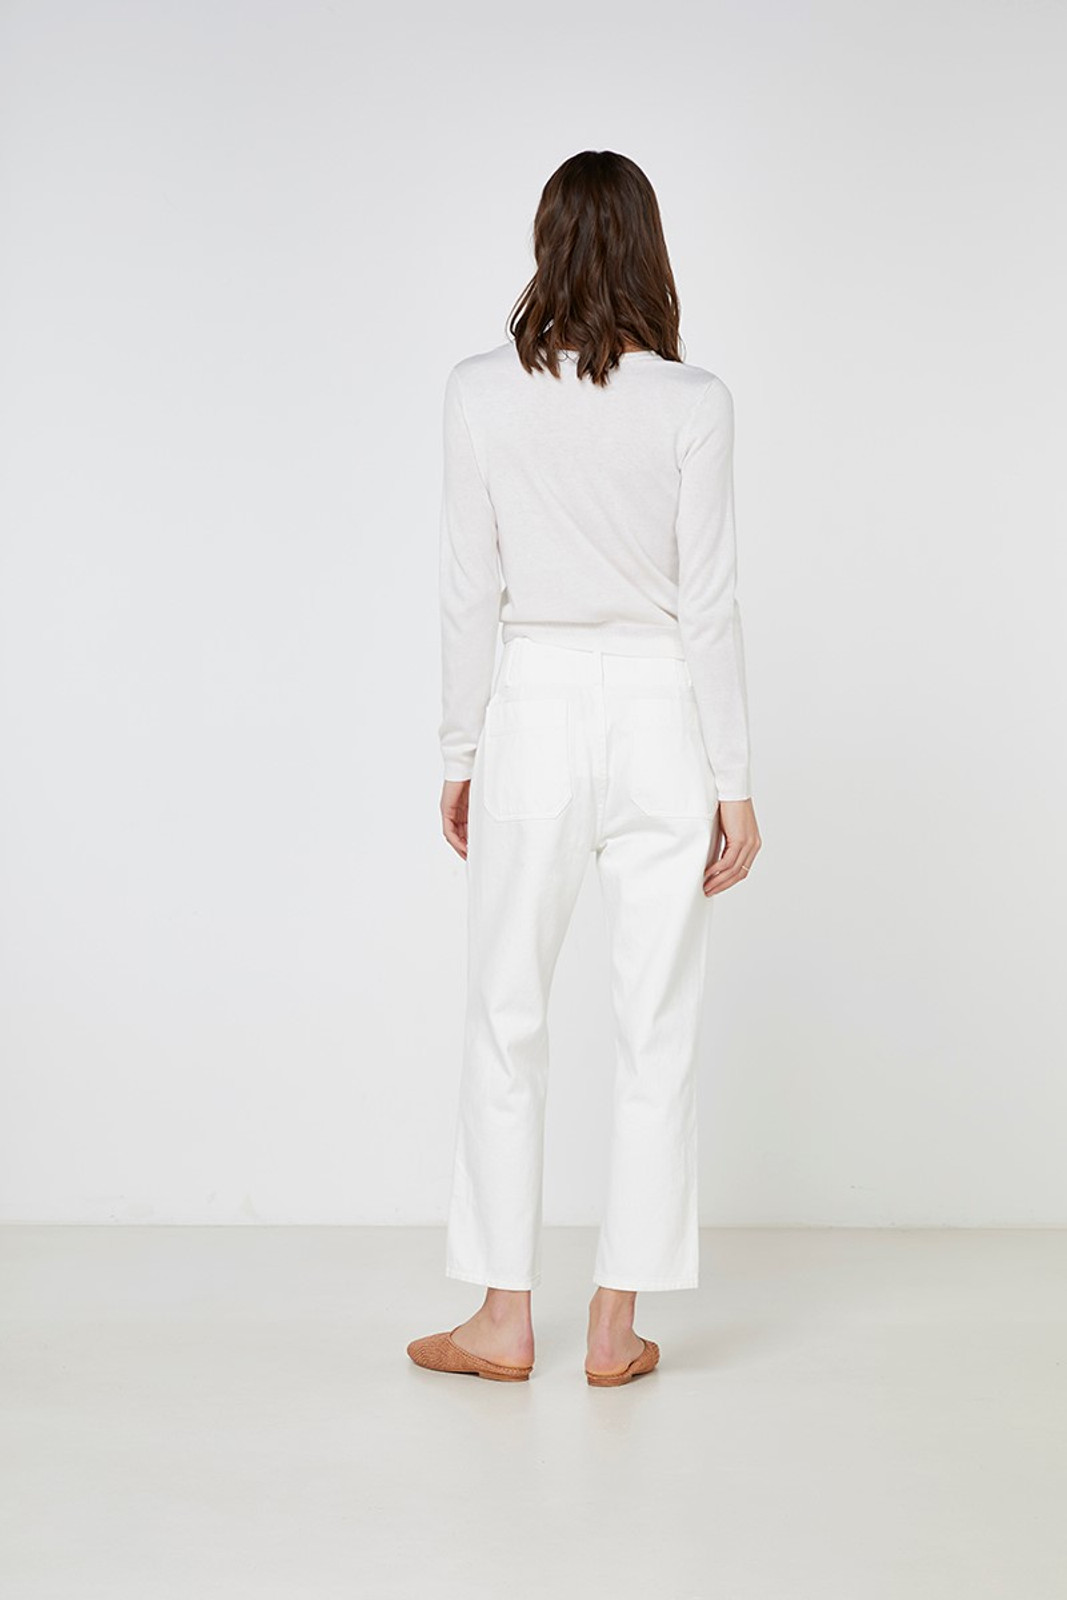 Elka Collective Gale Knit White  9